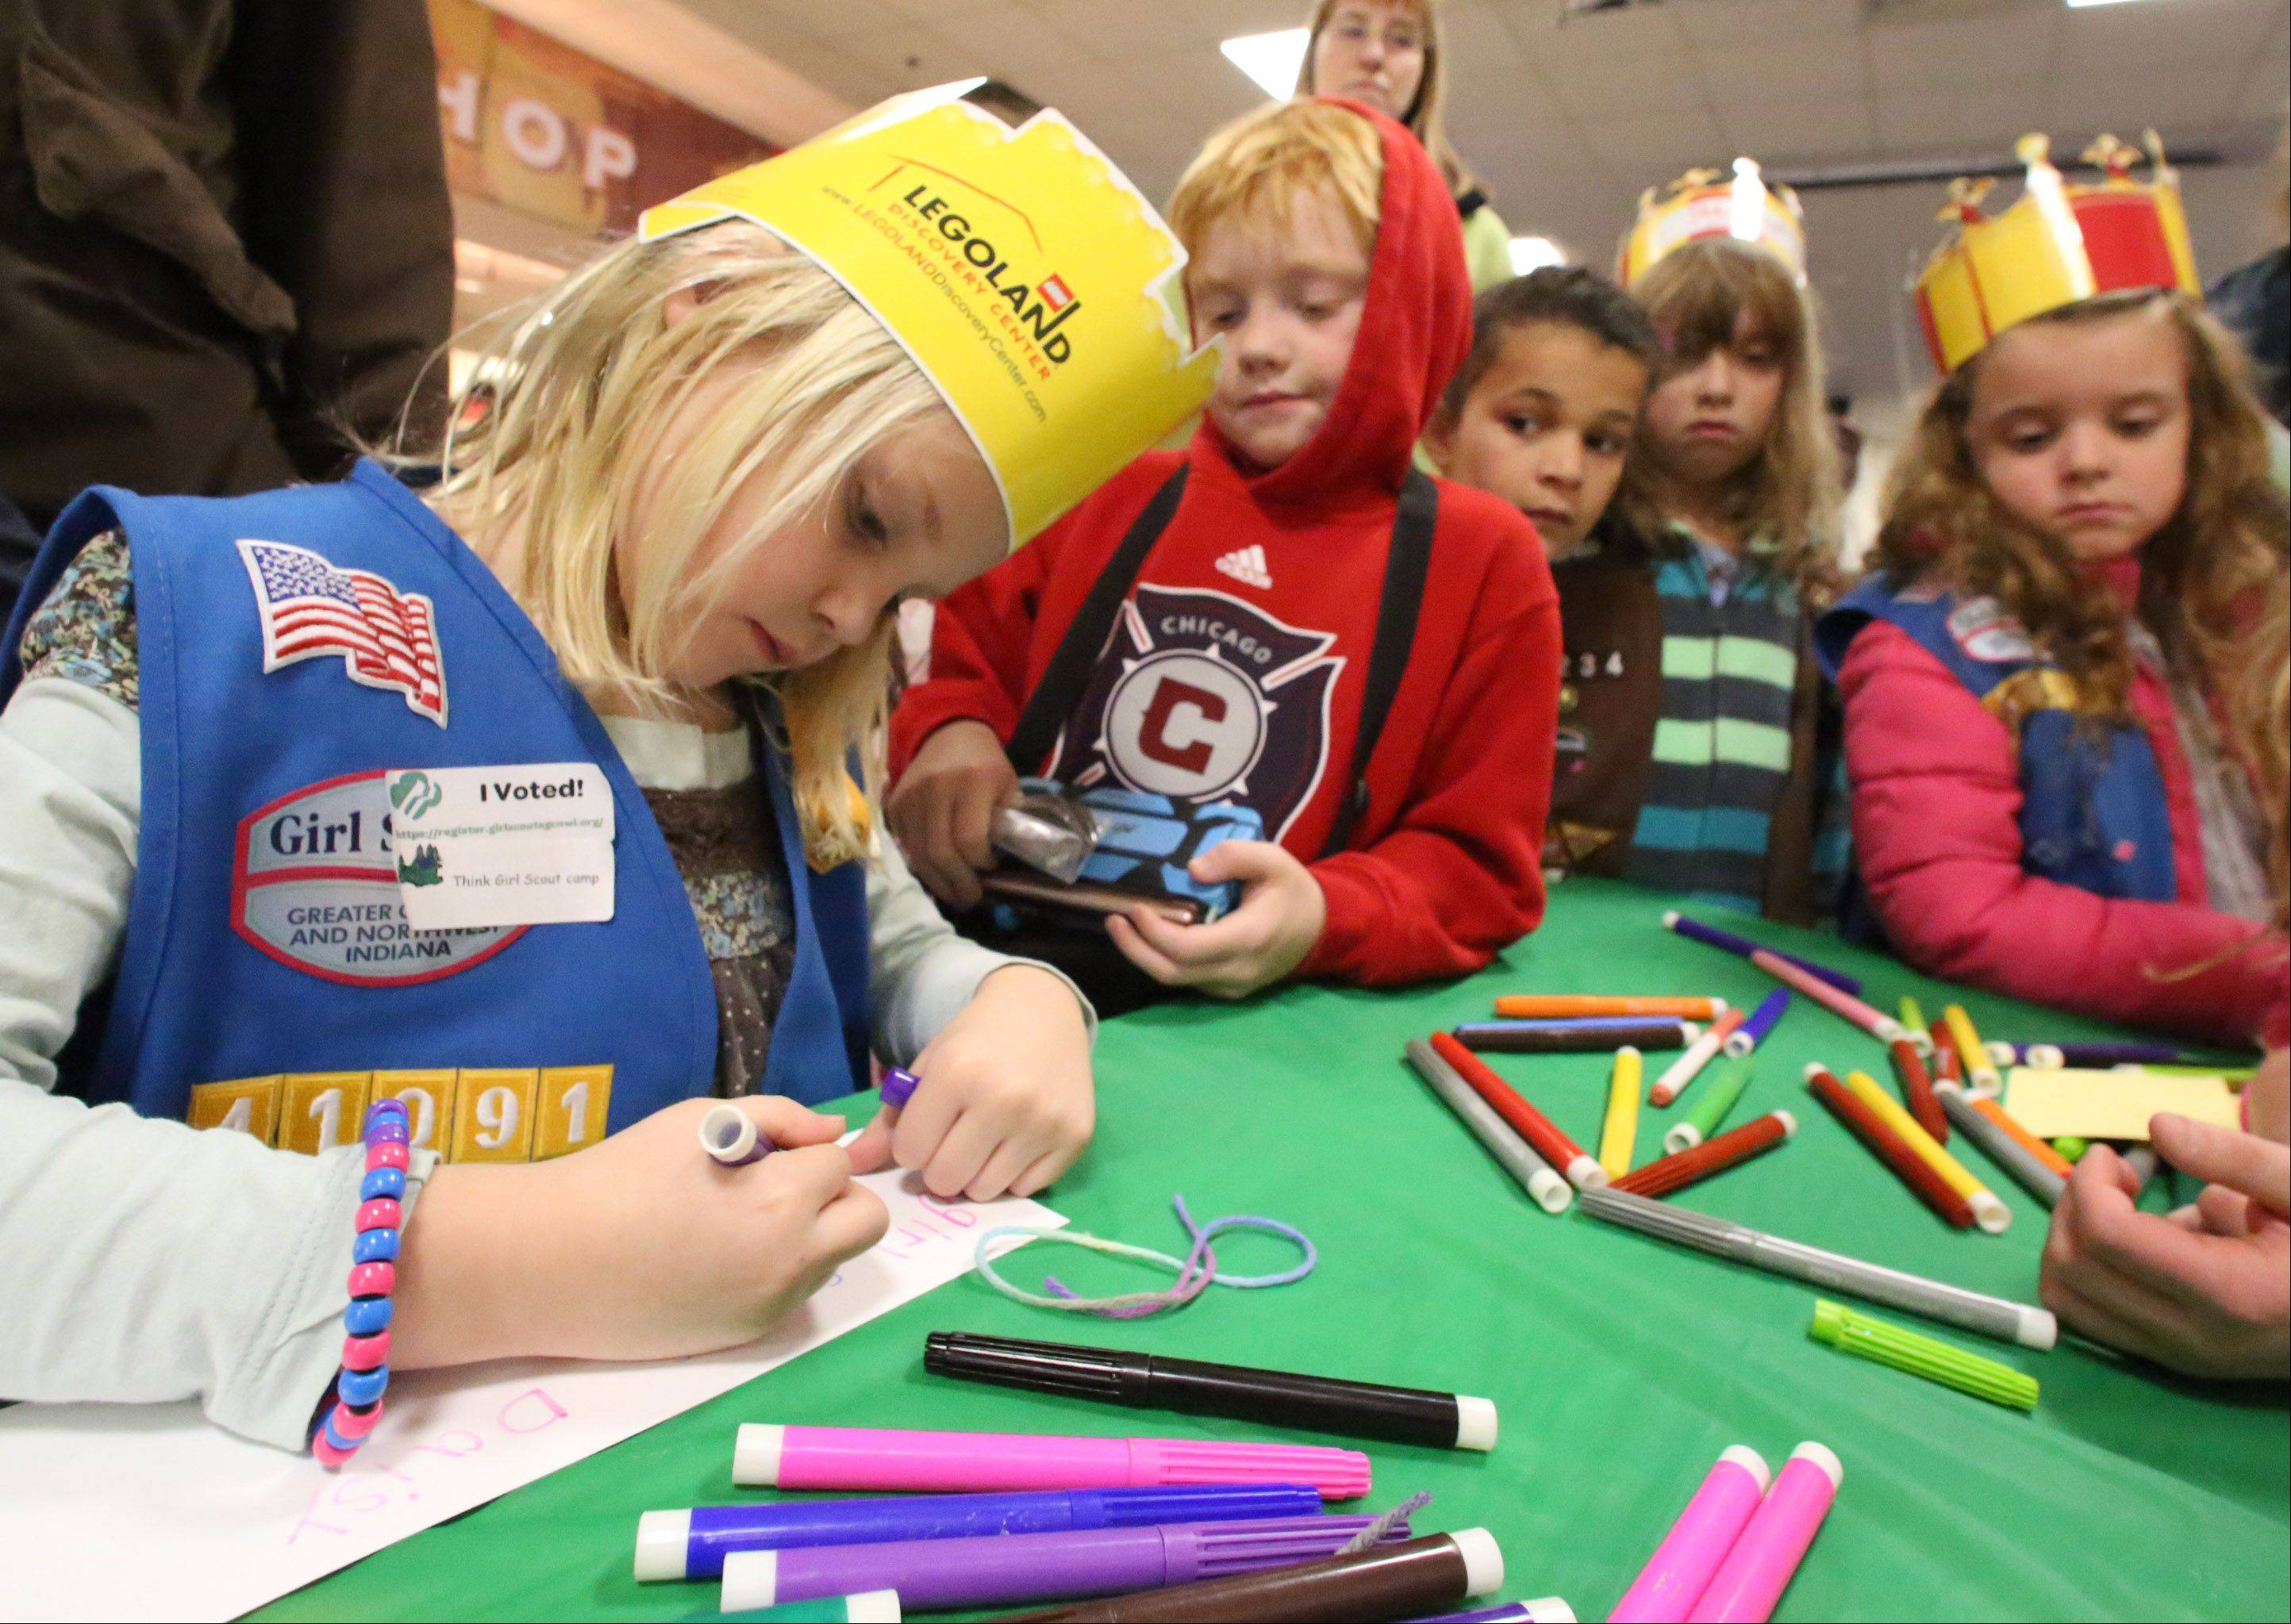 Chloe Eizenga, 6, of Elk Grove Village, with Troop 41091 makes a chef's hat at the fifth annual Girl Scouts Cookie Kickoff Rally held Saturday at Allstate Arena in Rosemont.